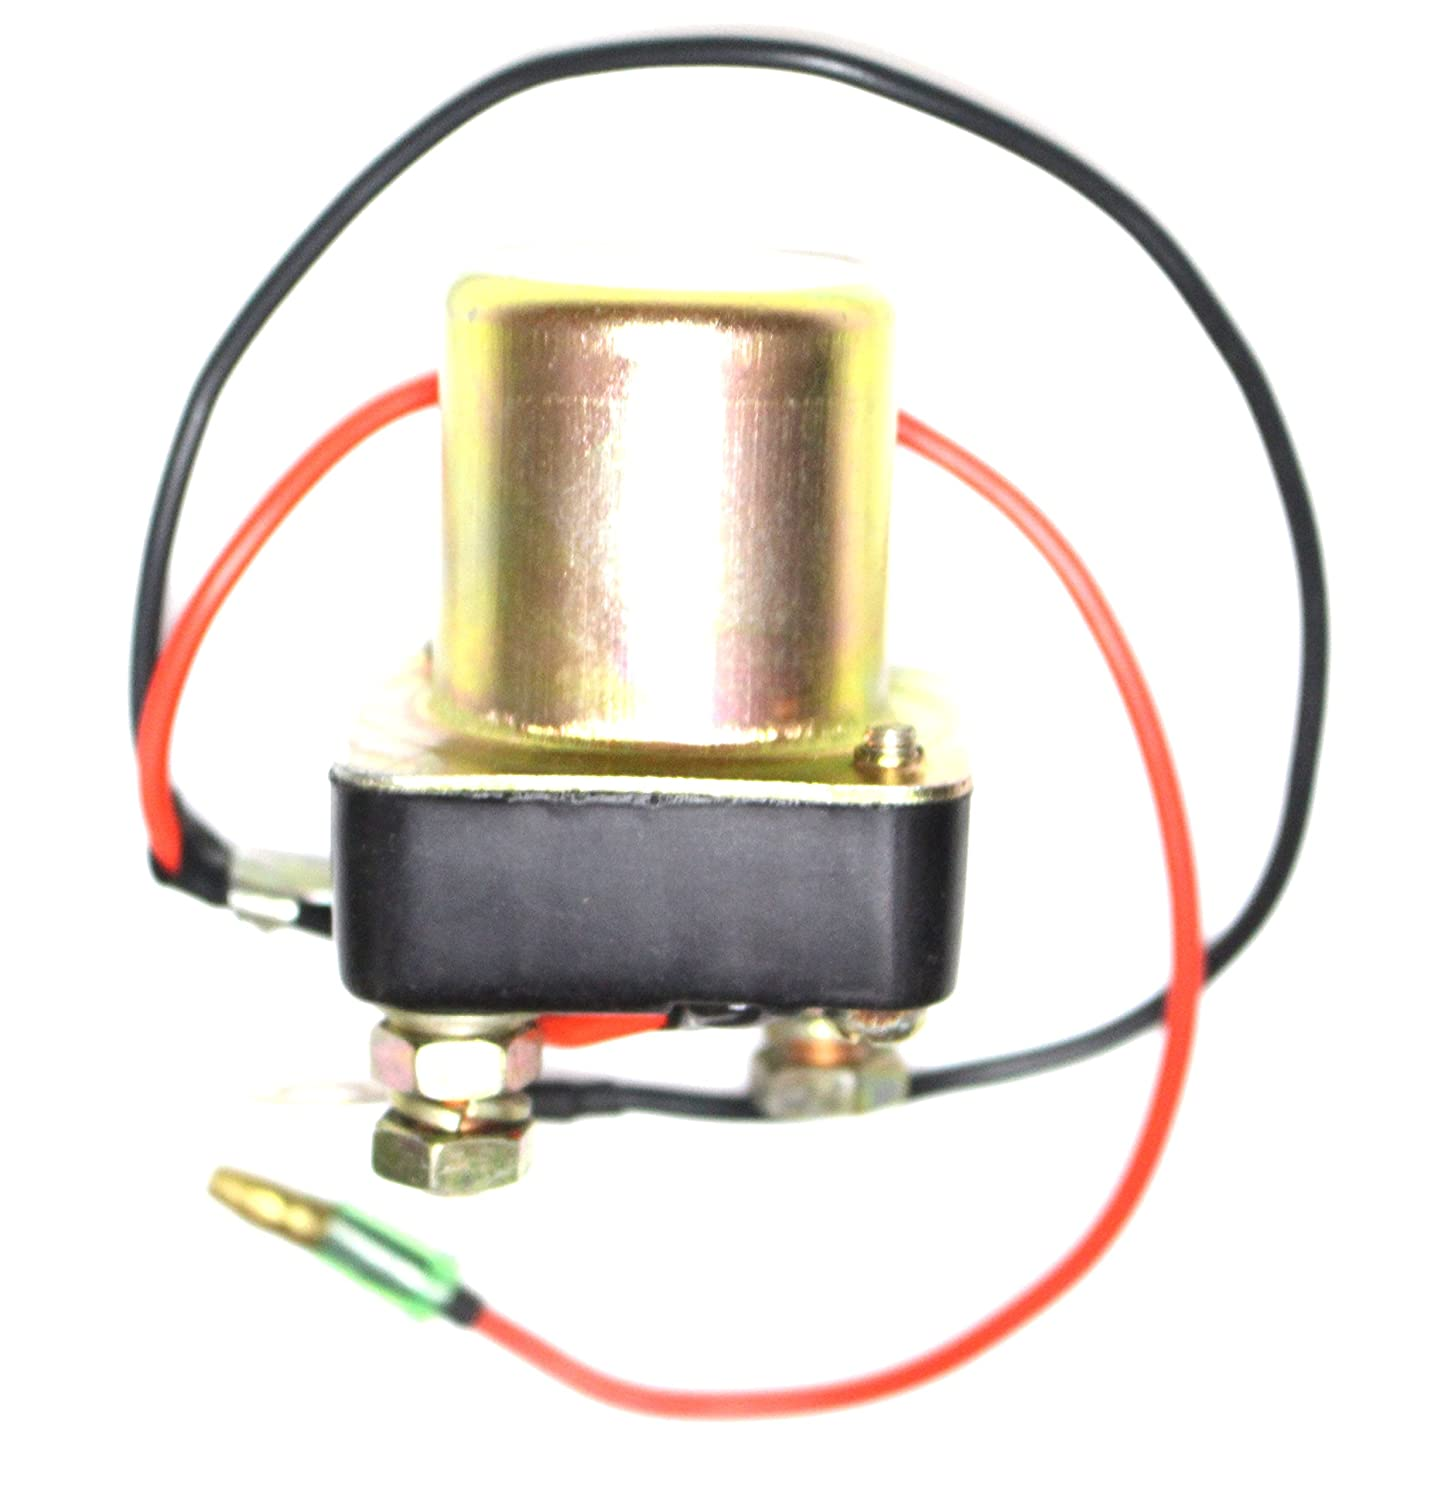 Yamaha Outboard Trim Relay Solenoid 6e5 81941 11 00 Boat 90hp 2 Stroke Wiring Diagram 115 135 150 175 200 Hp Sports Outdoors